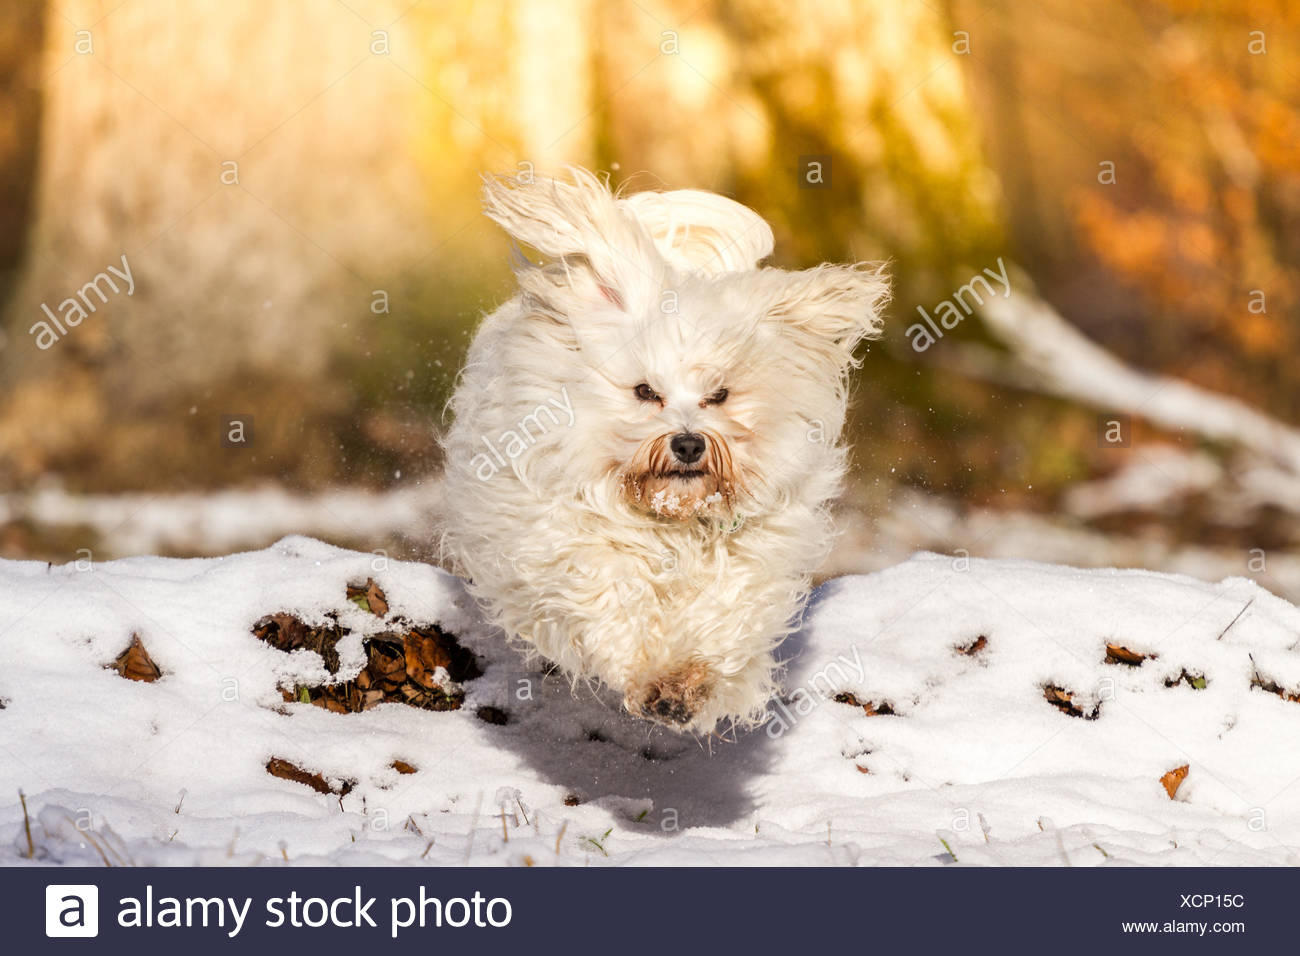 Hopping and jumping - Stock Image